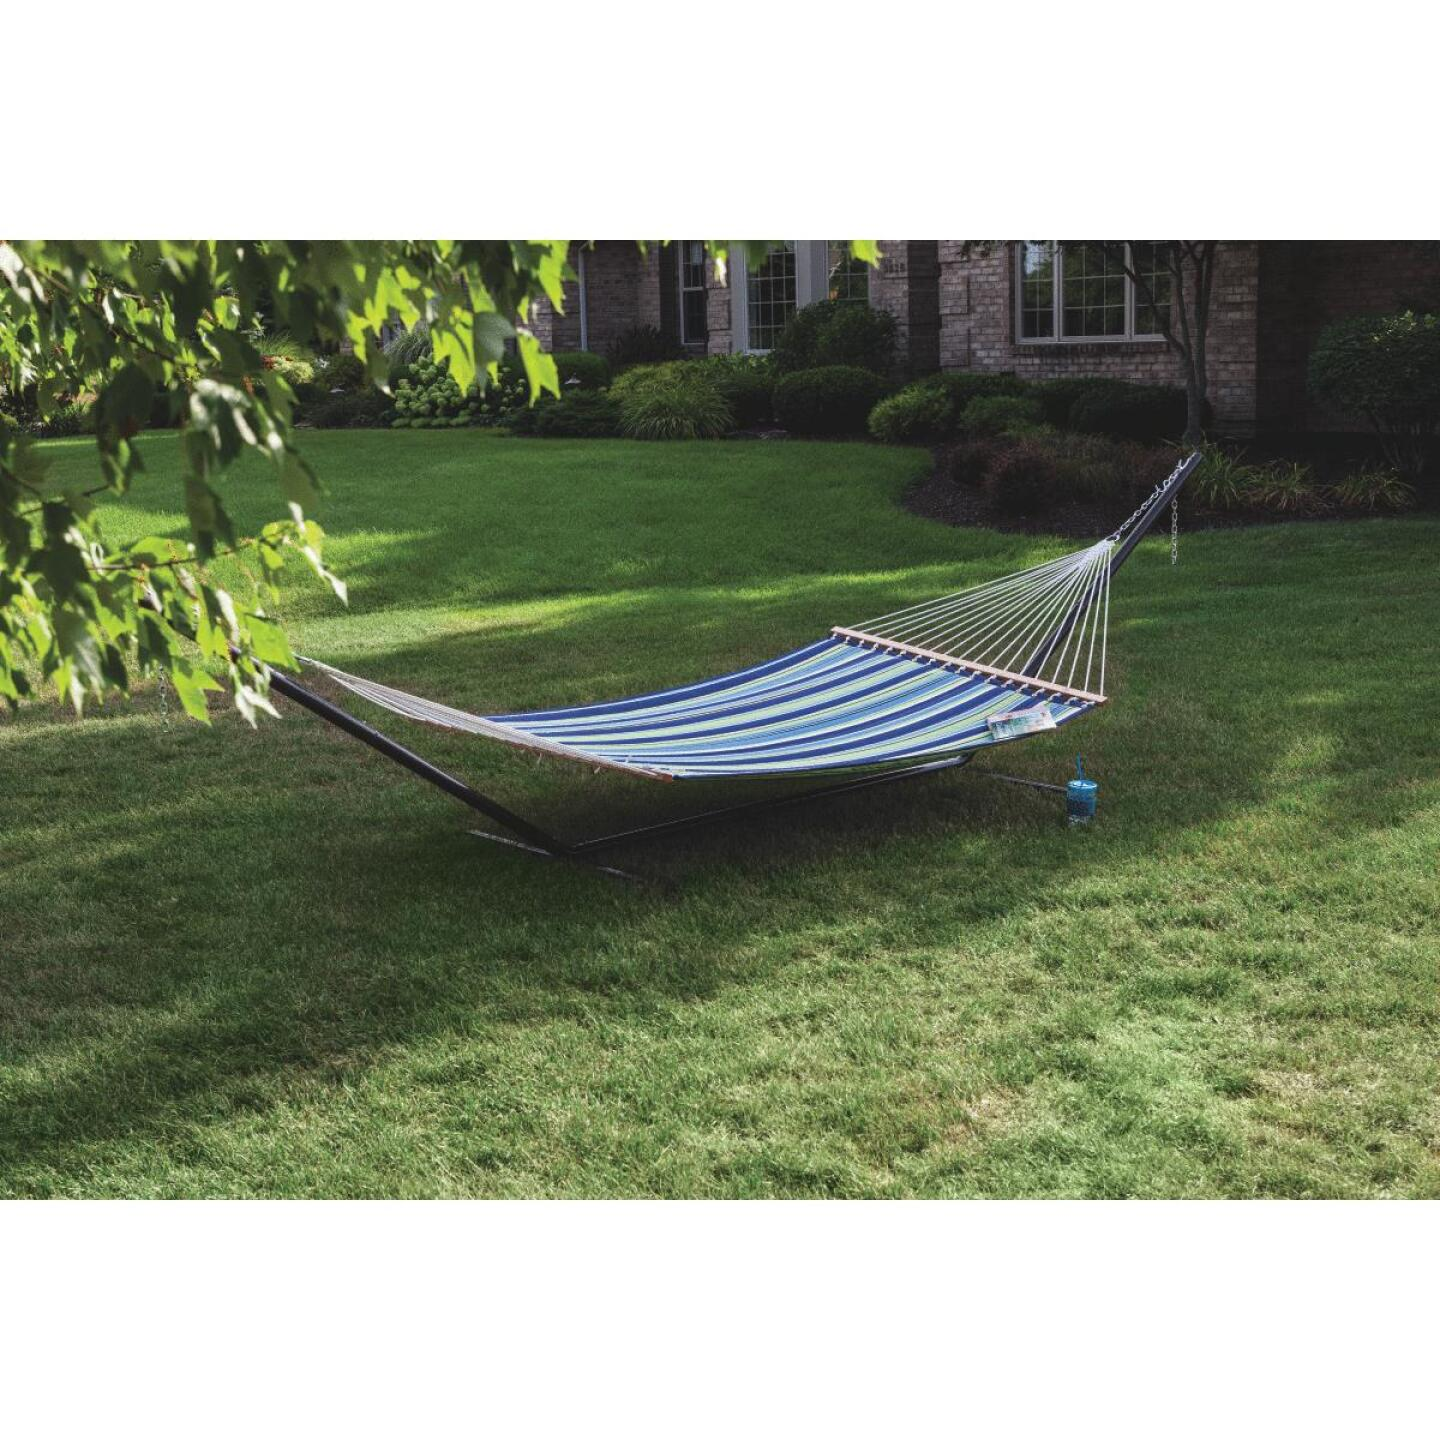 Castaway Duracord Blue & Green Striped Quilted Hammock Image 2